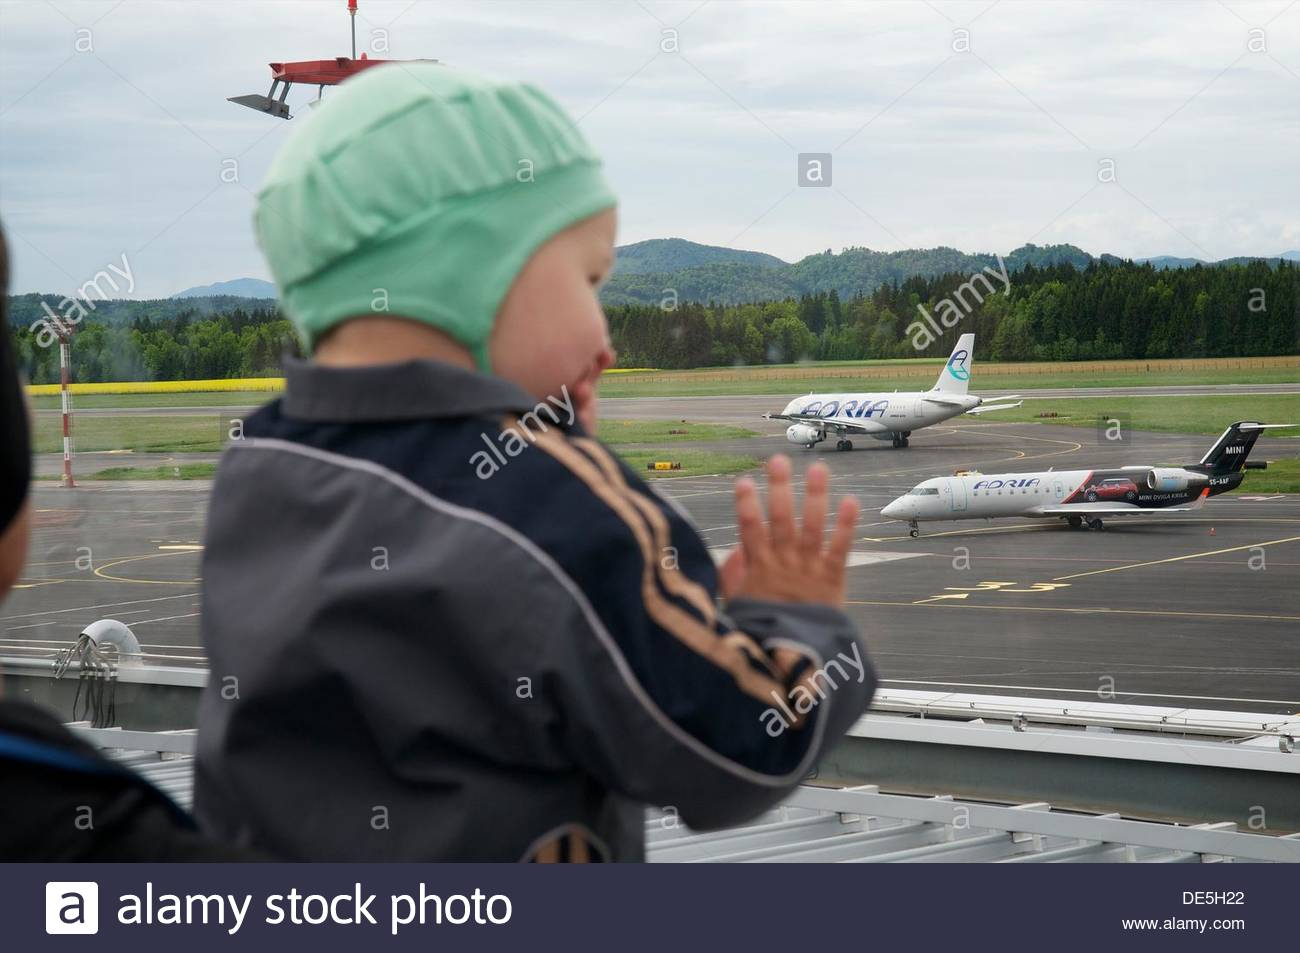 Airplanes of the Slovenian Adria Airlines Airport, Ljubljana, Slovenia - Stock Image